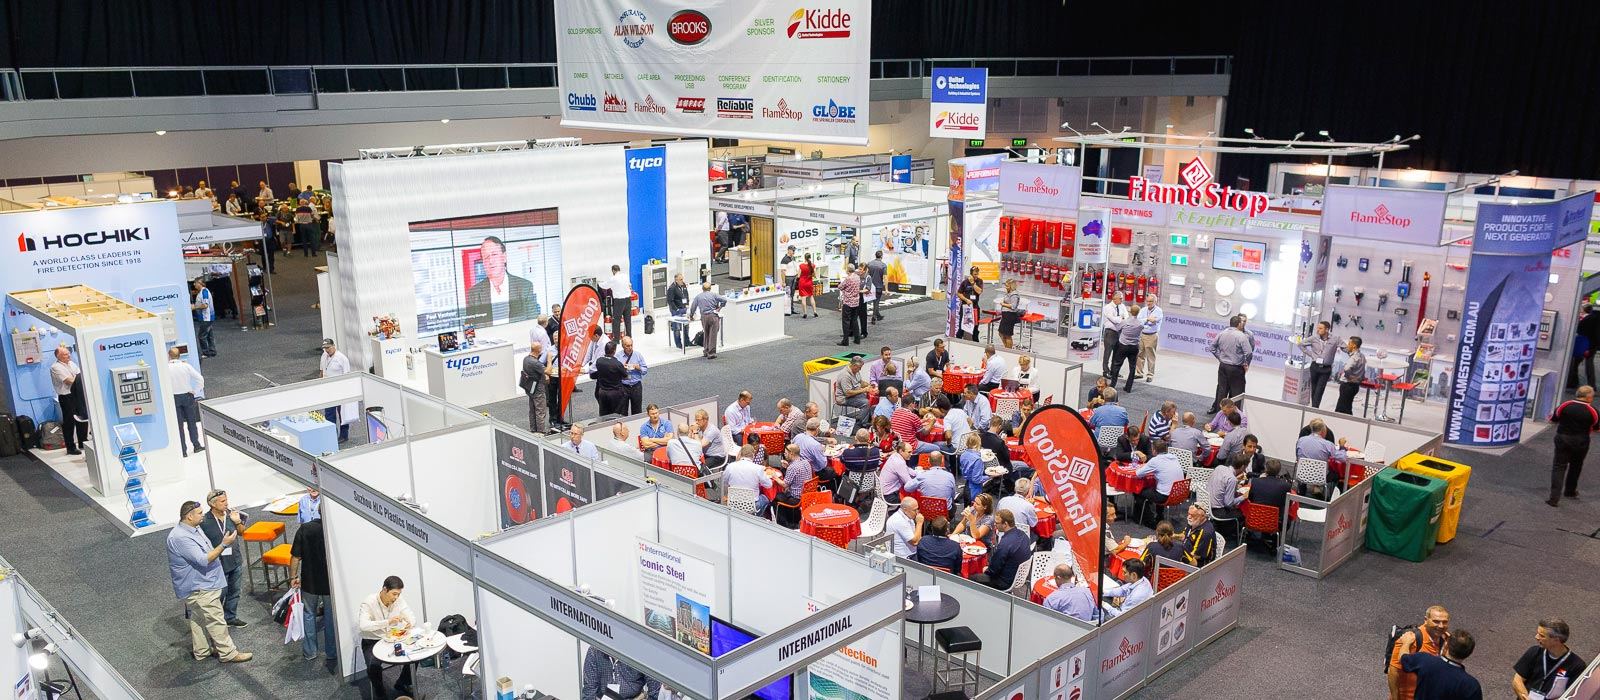 Gold Coast Convention Centre trade show corporate event photography